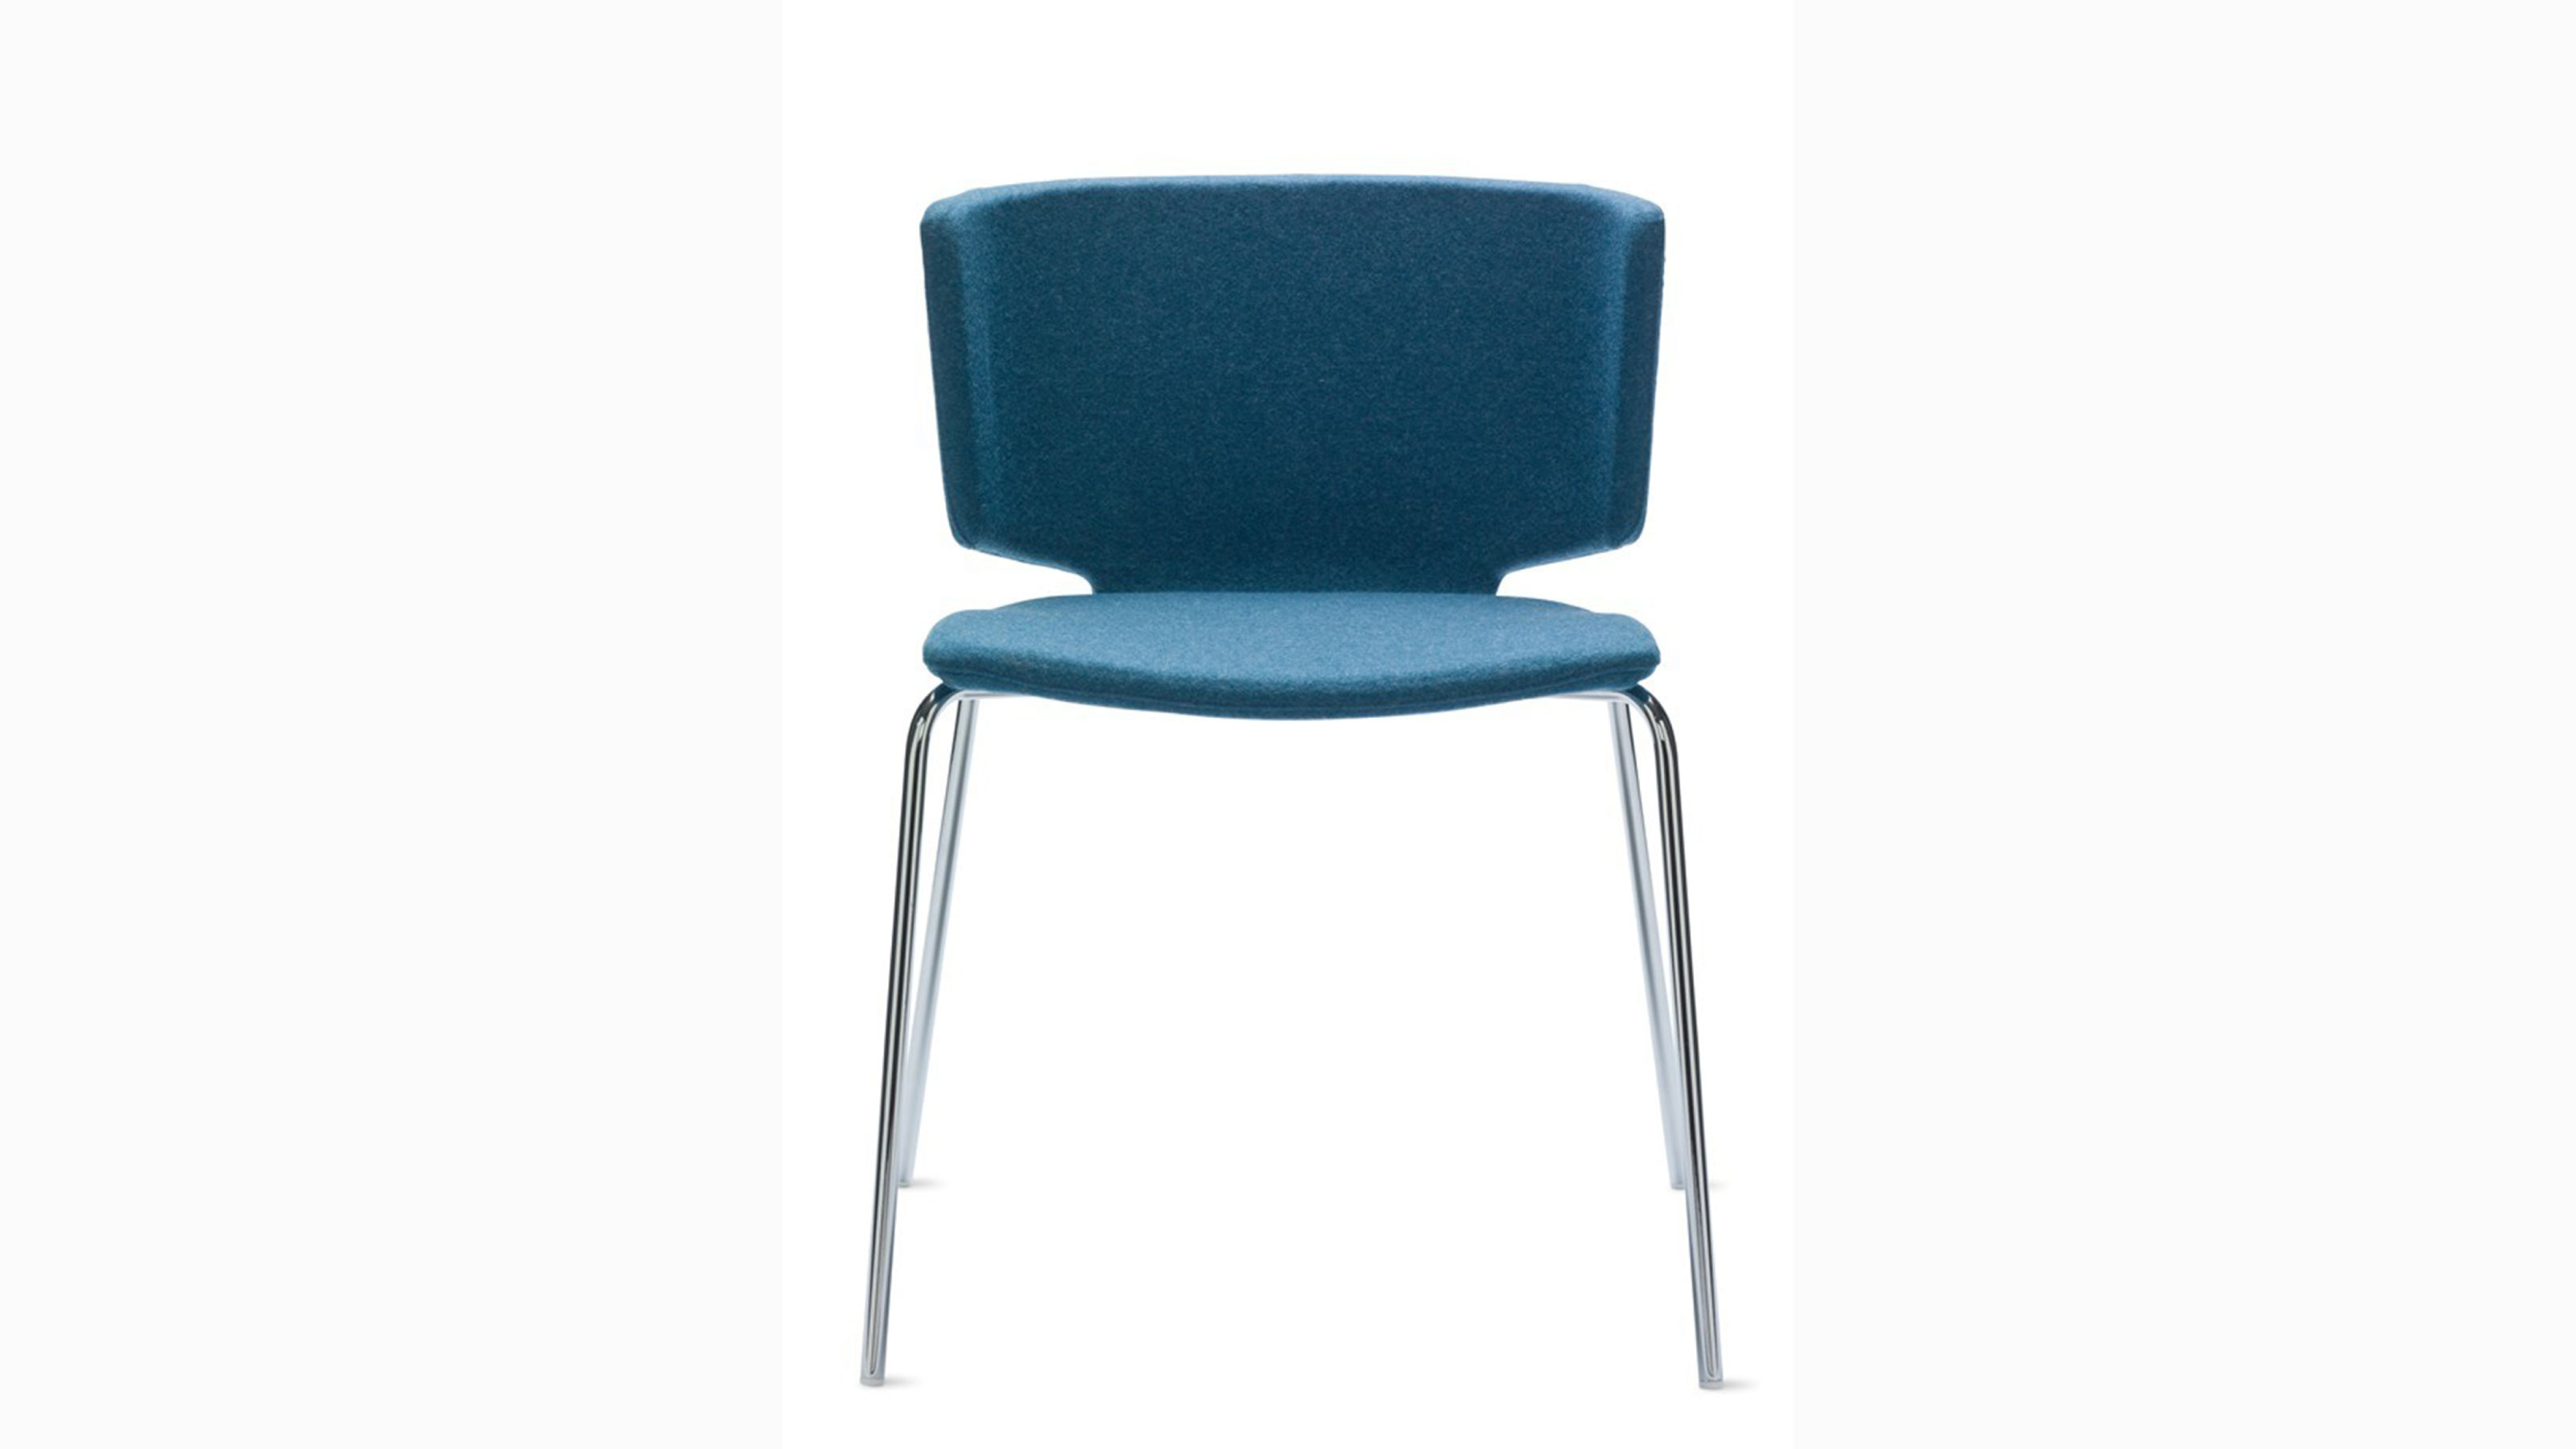 fice Chairs Hospital & Classroom Seating Steelcase